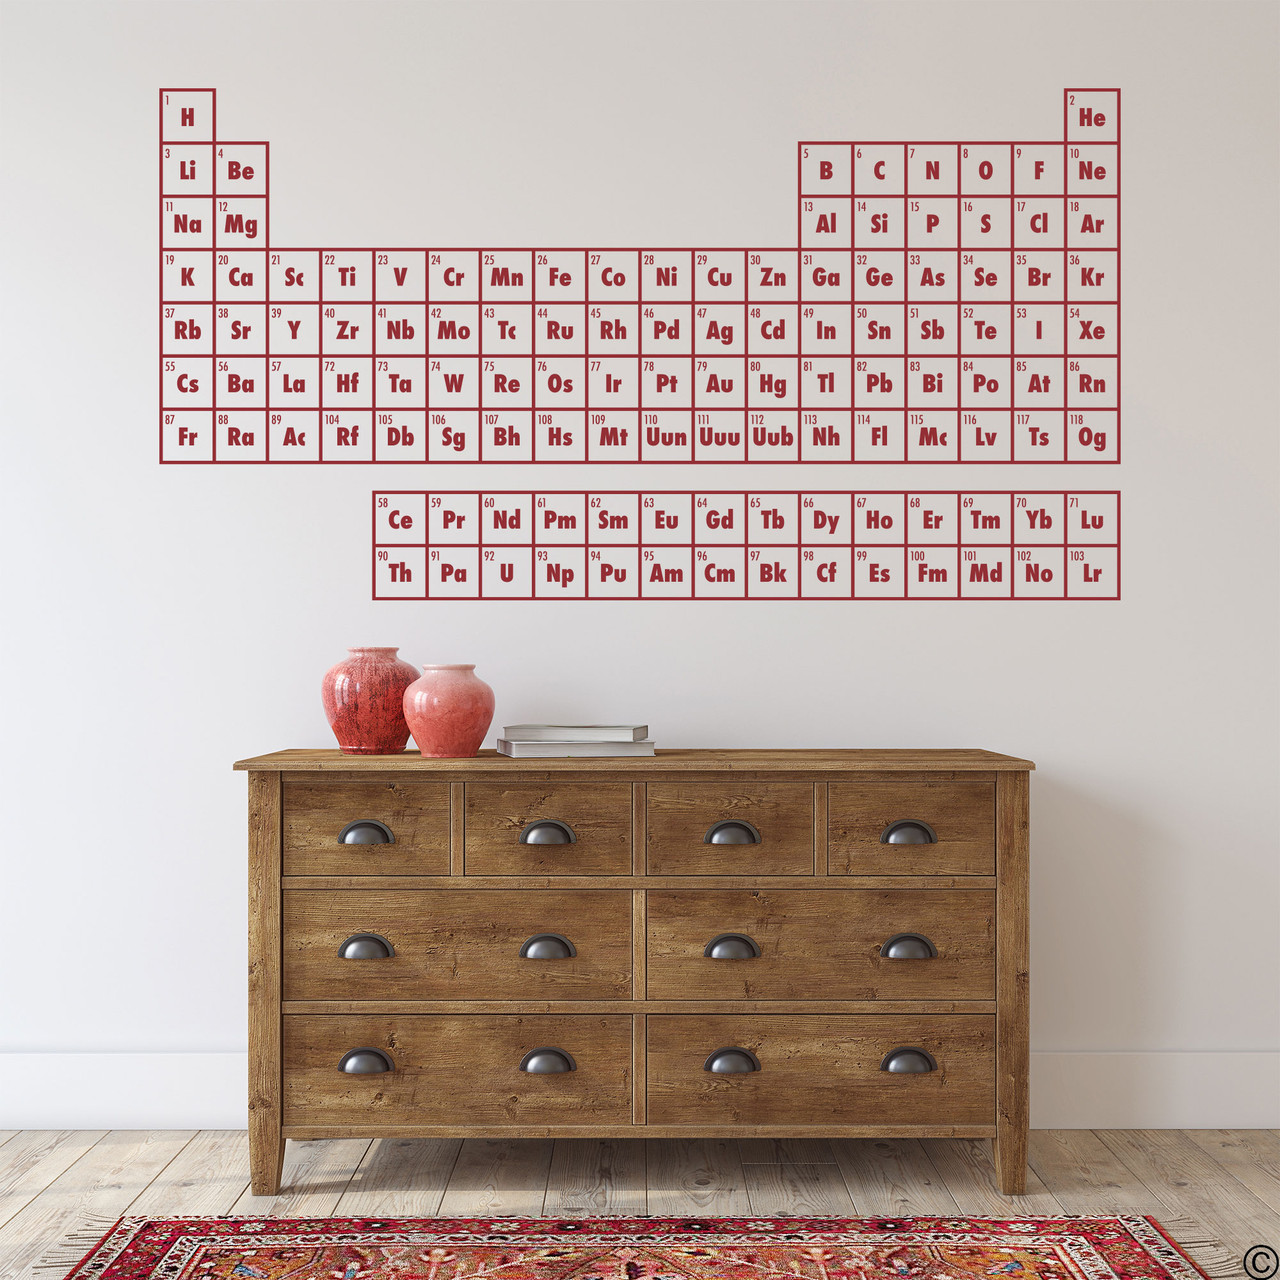 The Periodic Table of Elements wall decal shown here in dark red vinyl.